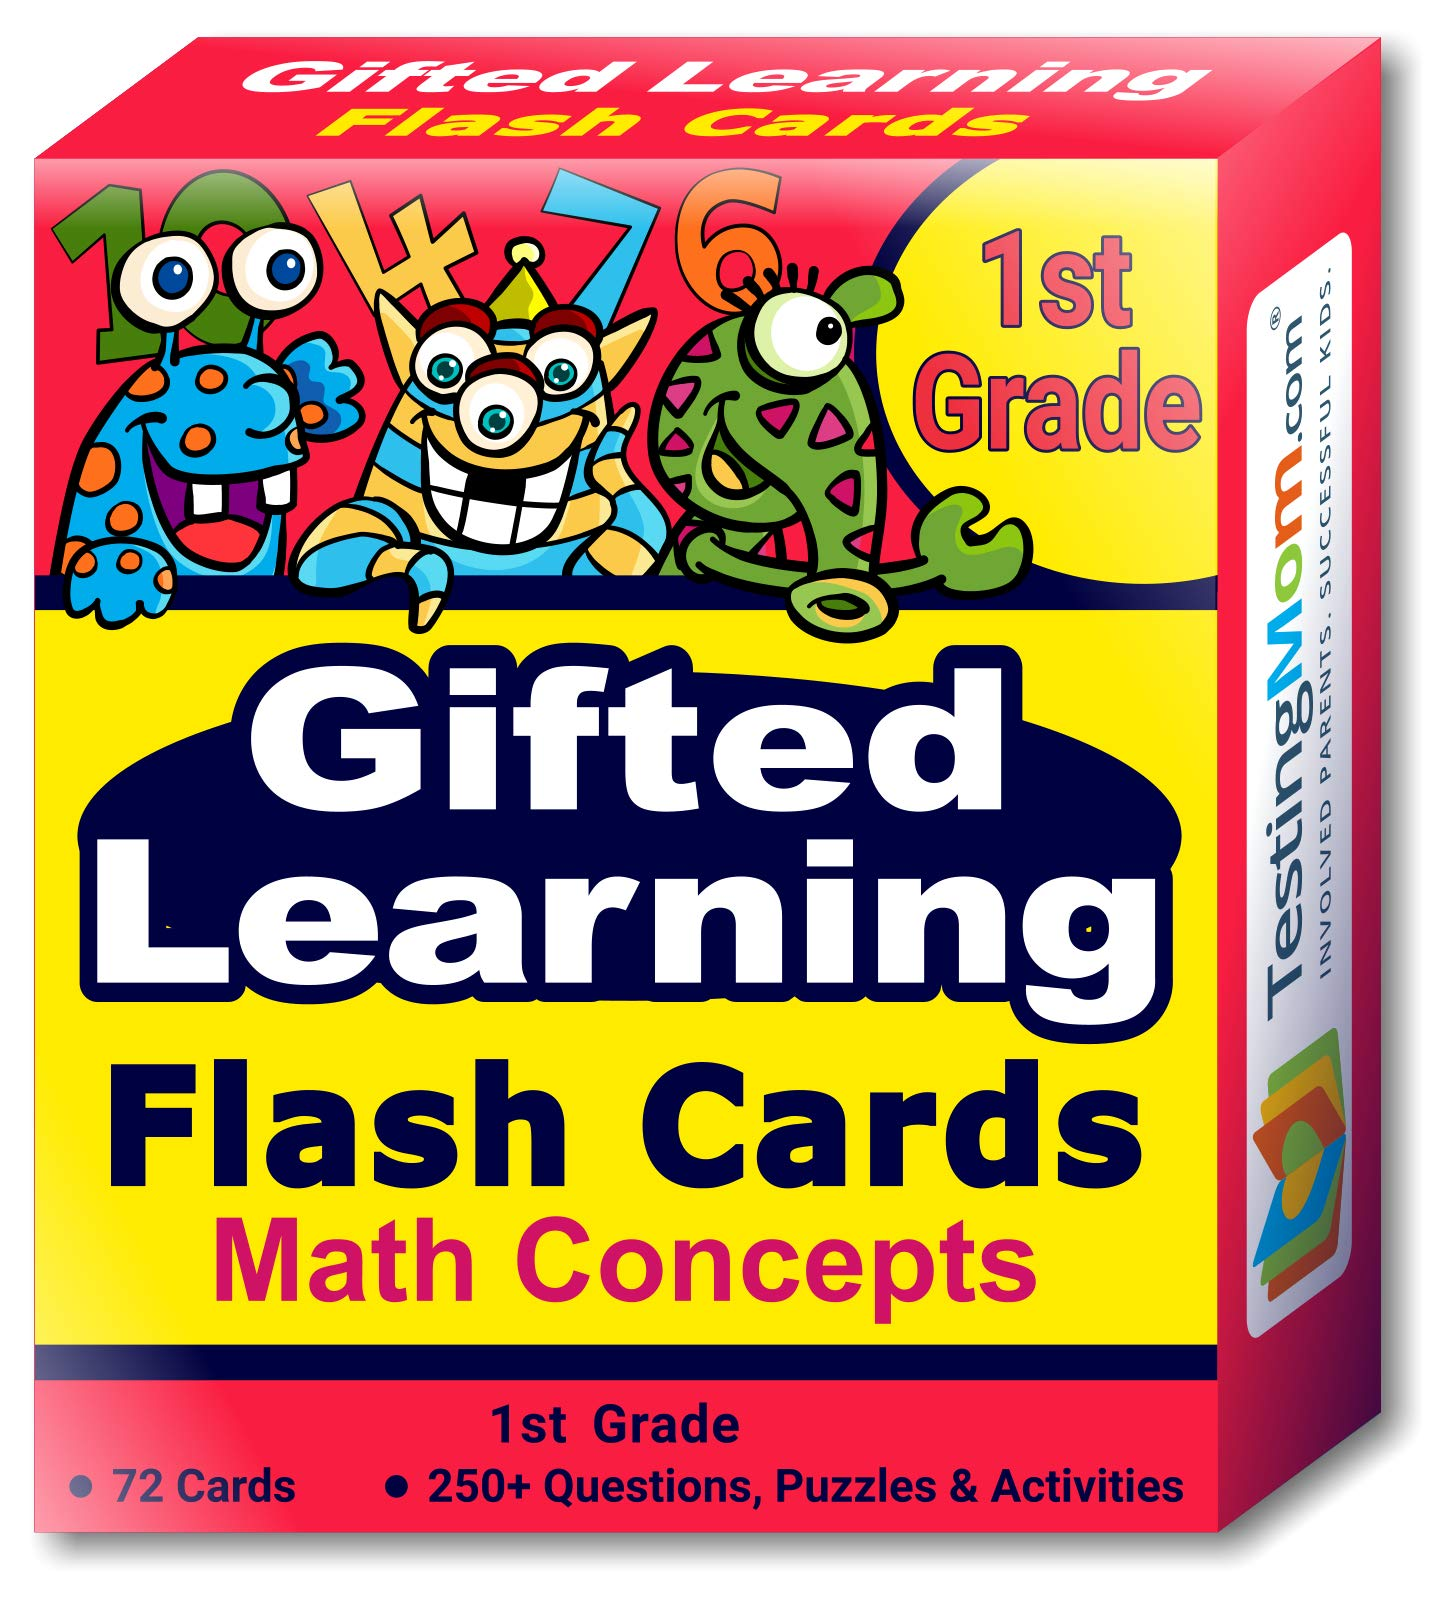 TestingMom.com Gifted Learning Flash Cards - Math Concepts for Grade 1 - Educational Practice for CogAT Test, OLSAT Test, ITBS, NYC Gifted and Talented, WISC, WPPSI